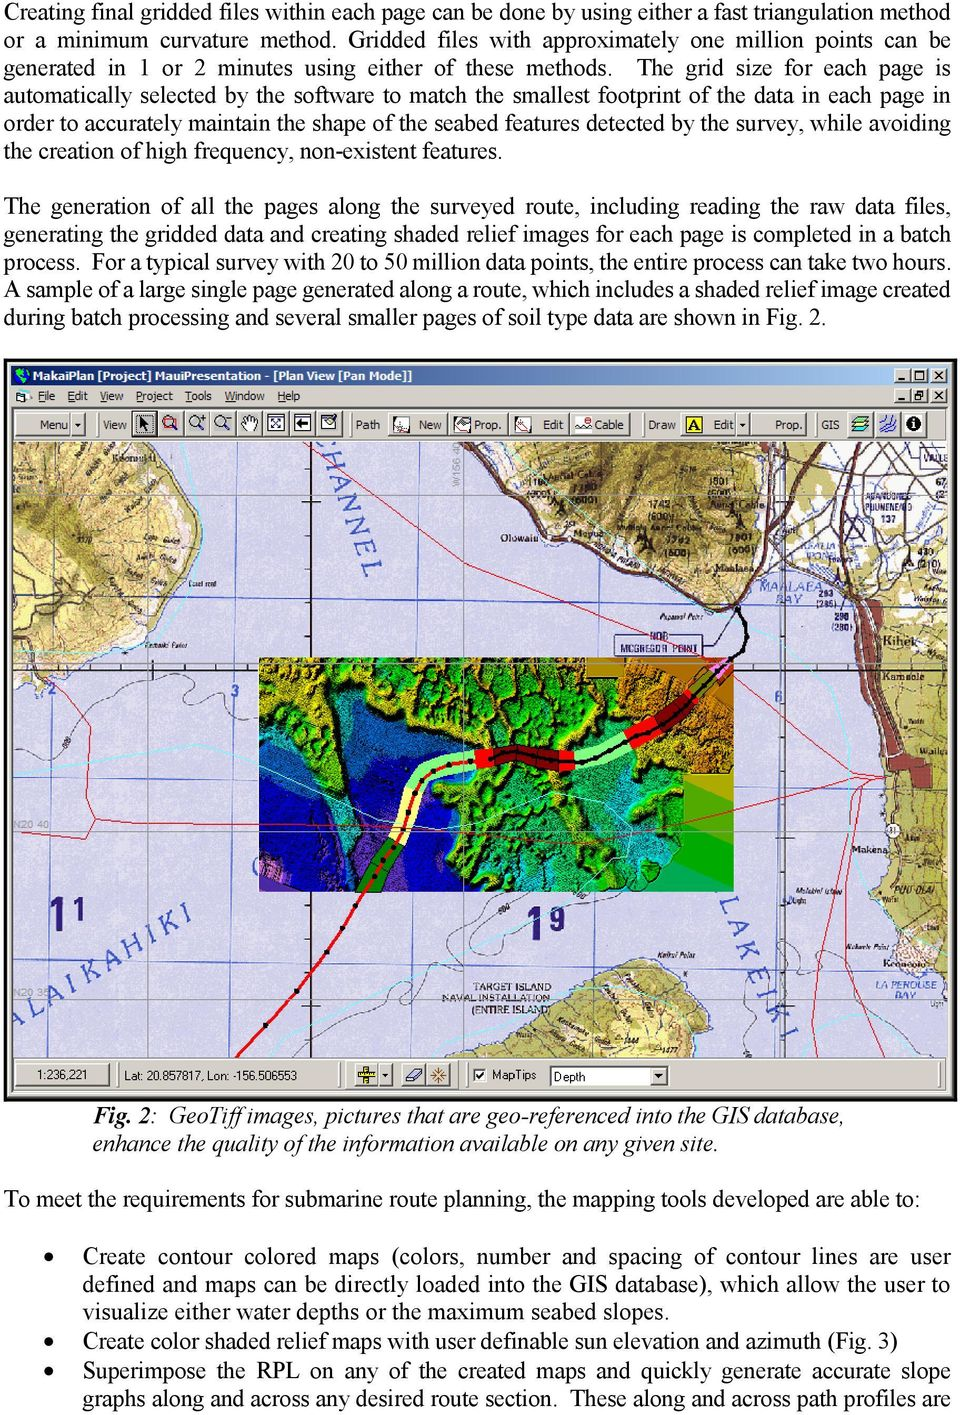 The grid size for each page is automatically selected by the software to match the smallest footprint of the data in each page in order to accurately maintain the shape of the seabed features